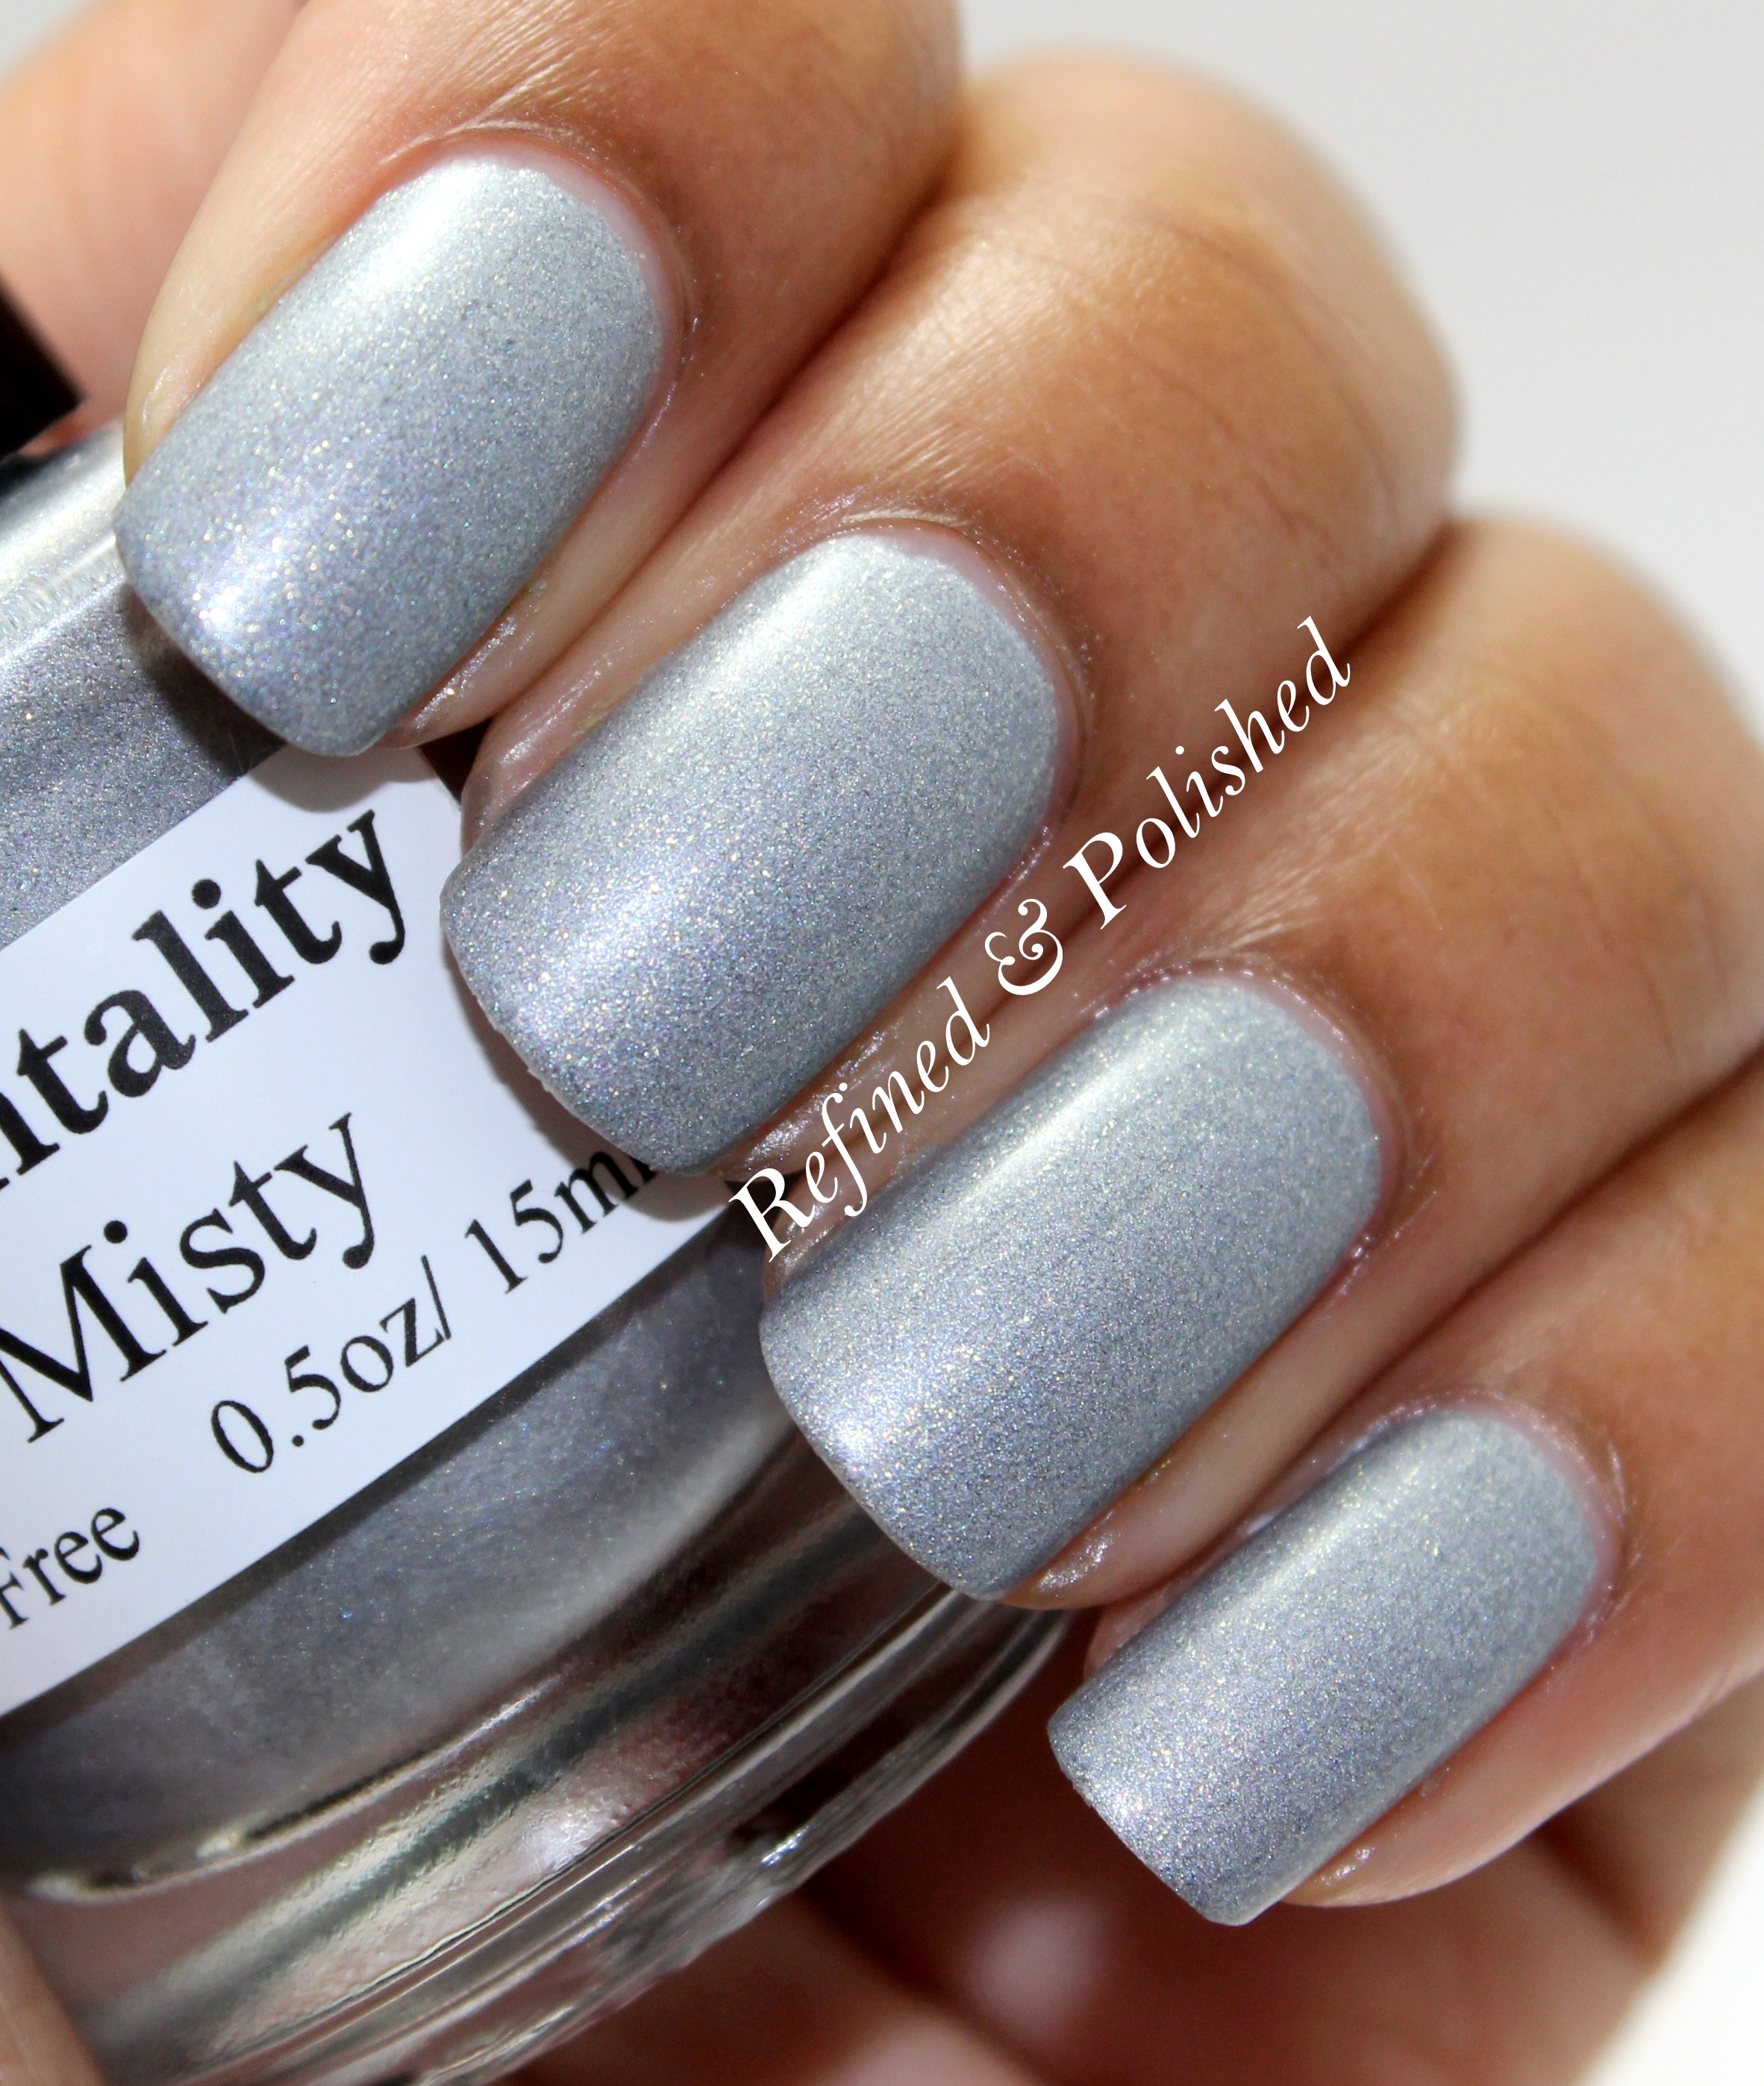 Mentality Grayscale Mattes Collection - Refined and Polished